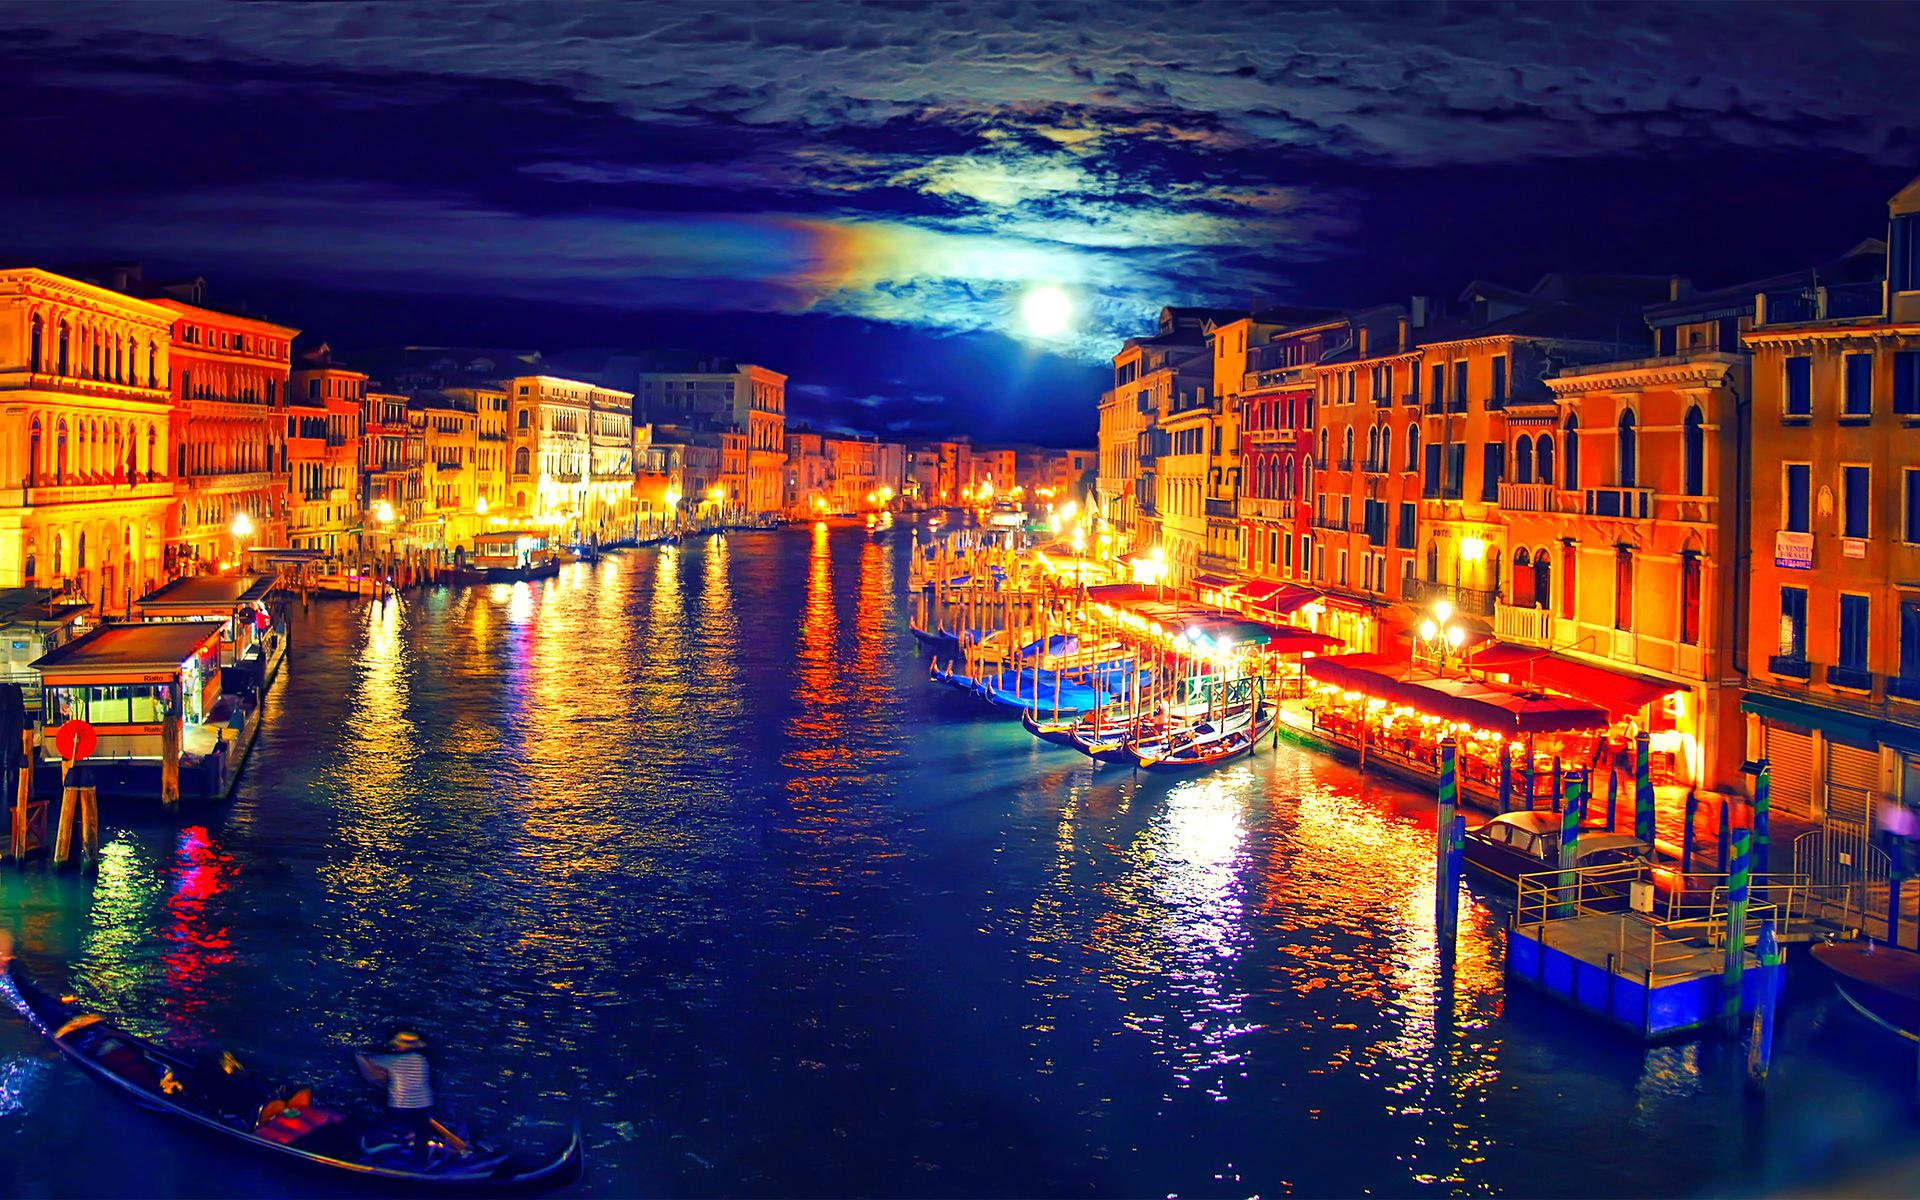 Venice At Night Painting HD Wallpaper Background Images 1920x1200